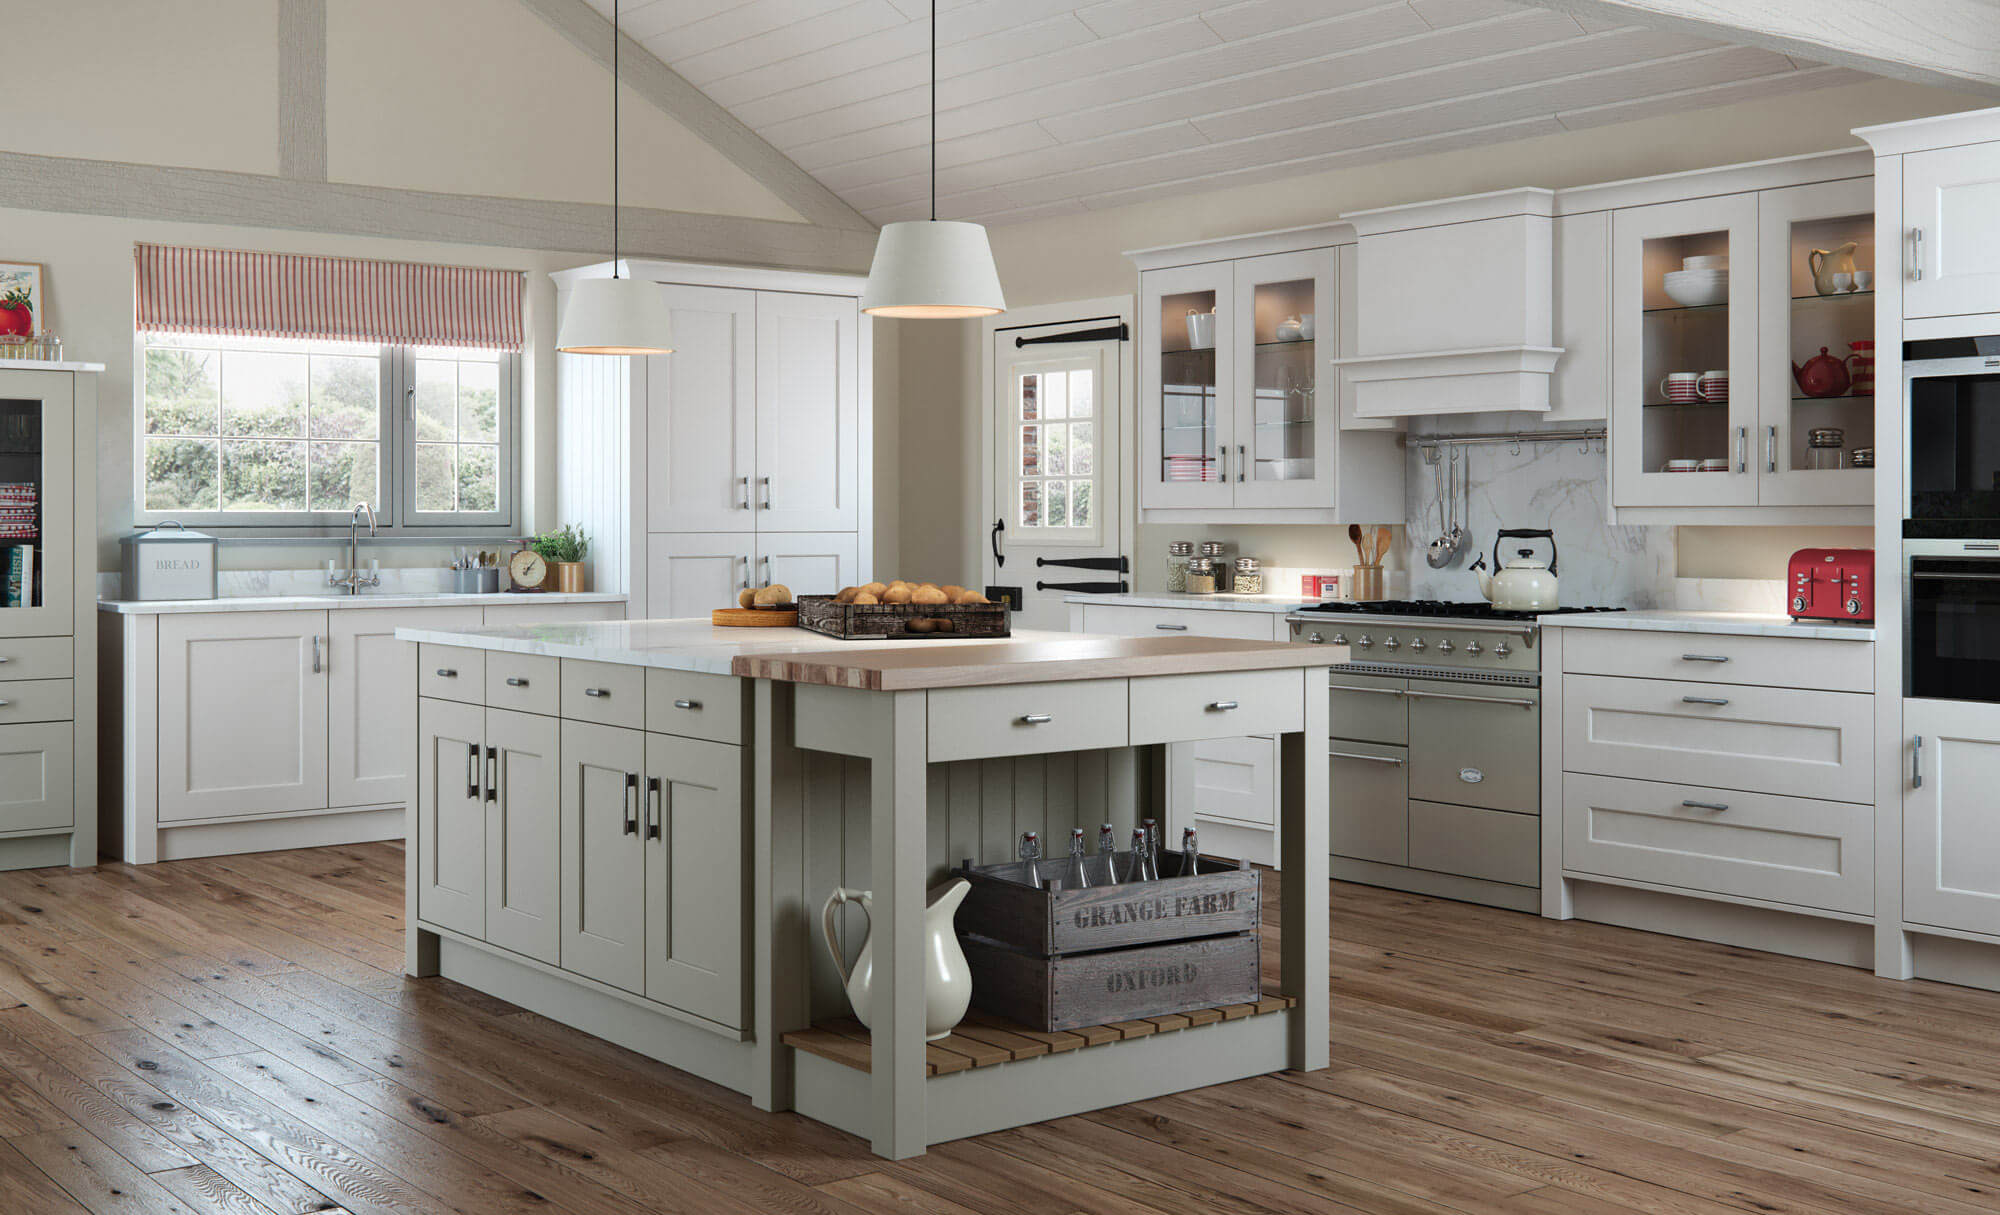 Light grey kitchen cabinets in a country style kitchen ...